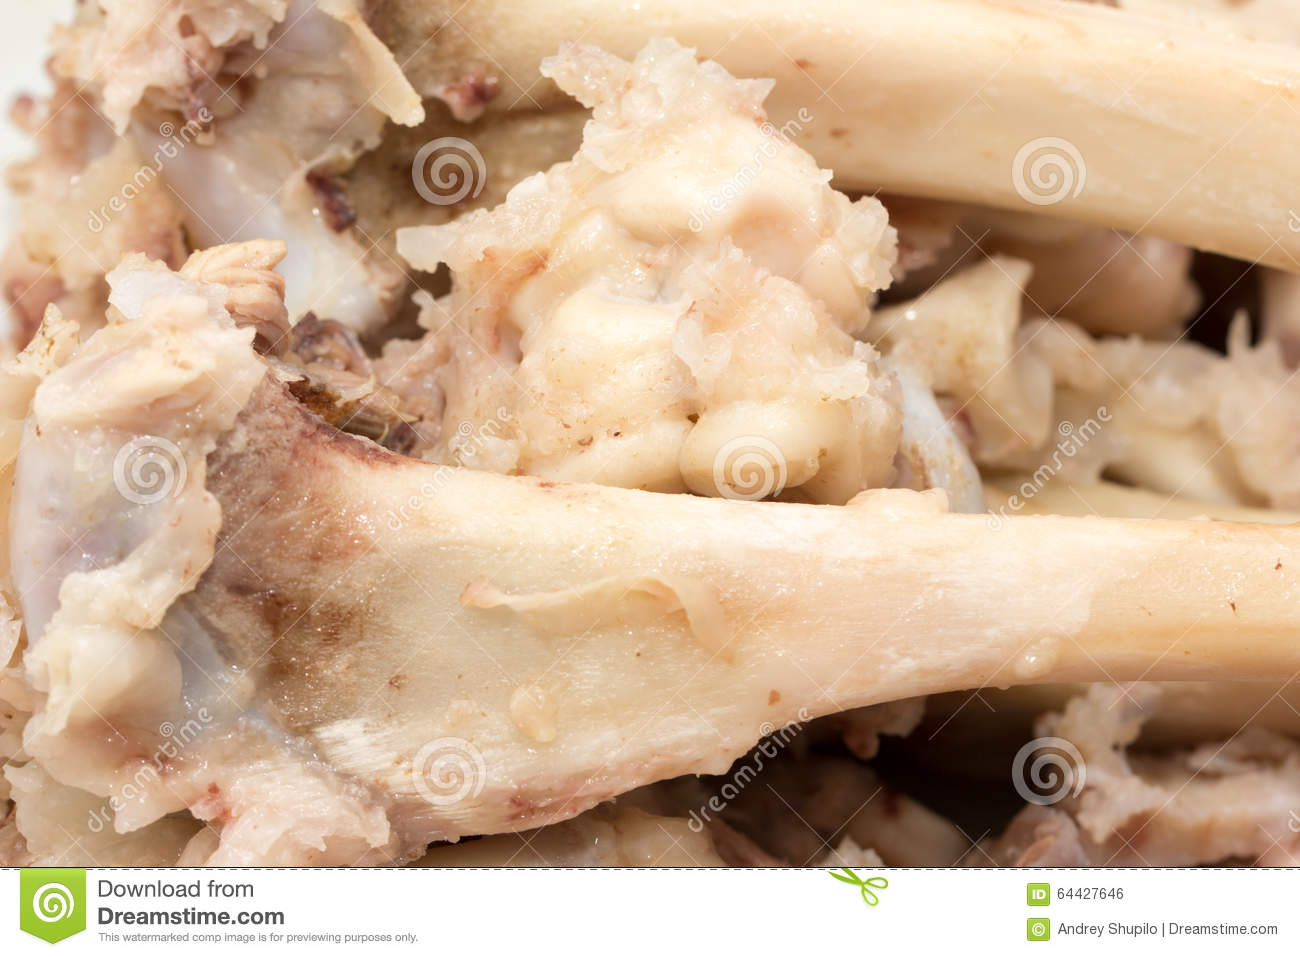 Can Dogs Eat Boiled Chicken Bones